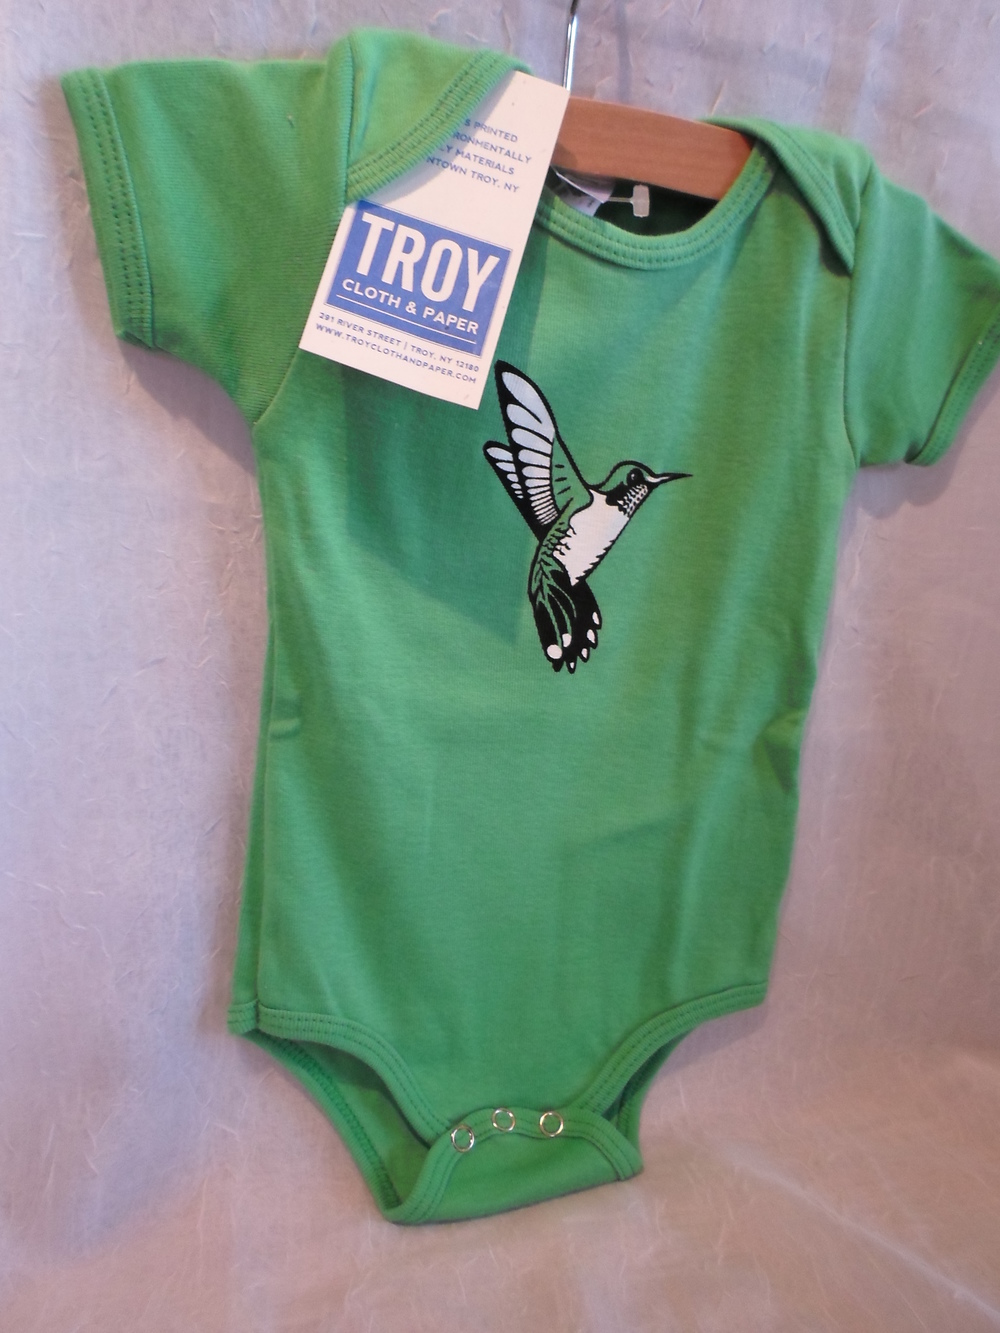 Troy Cloth & Paper Hummingbird Bodysuit 3-6m $16.00 Wants 1 PURCHASED